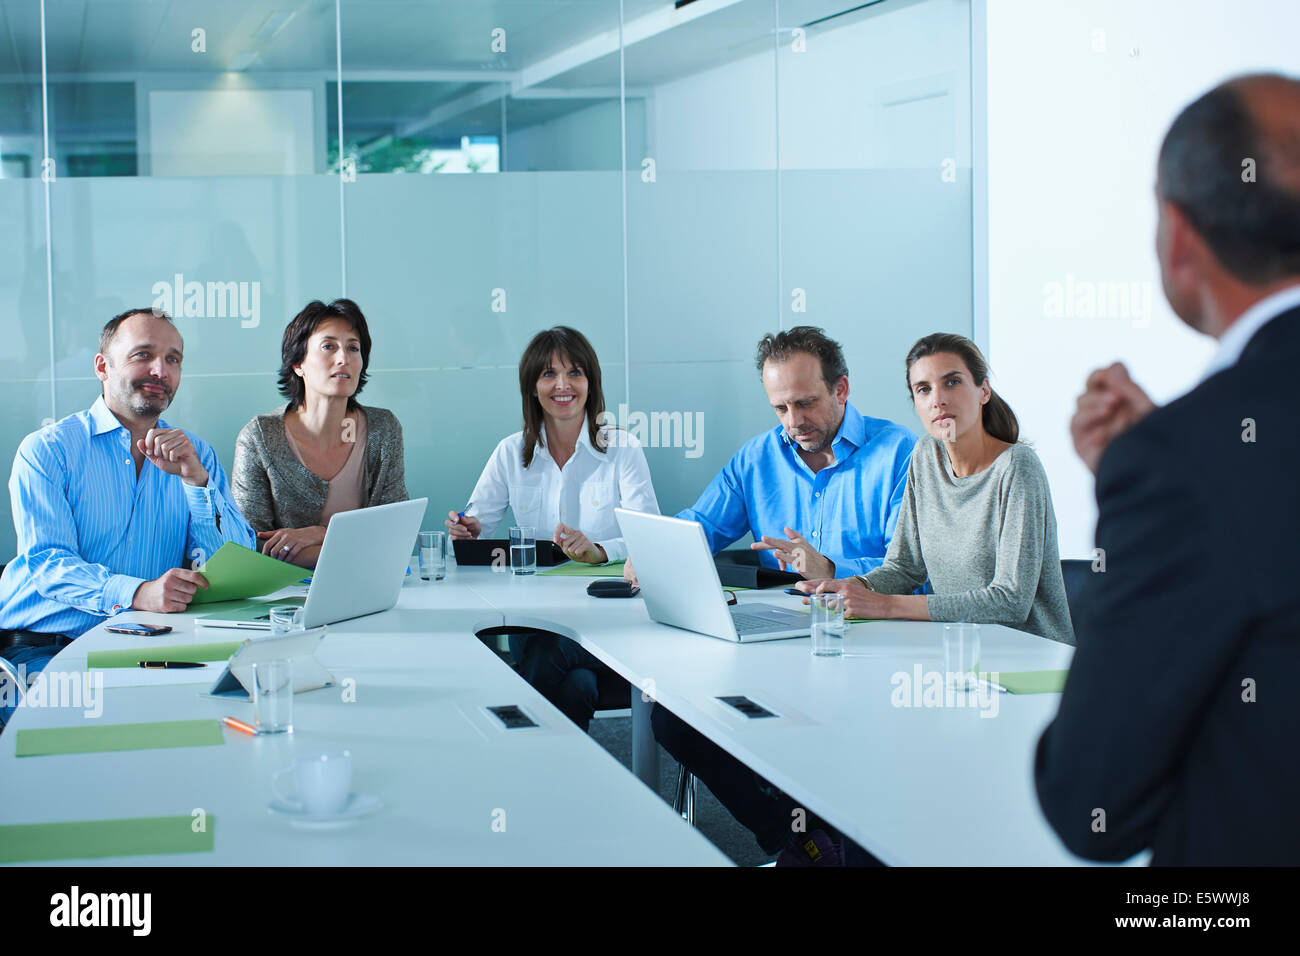 Business team interviewing candidate at boardroom table - Stock Image